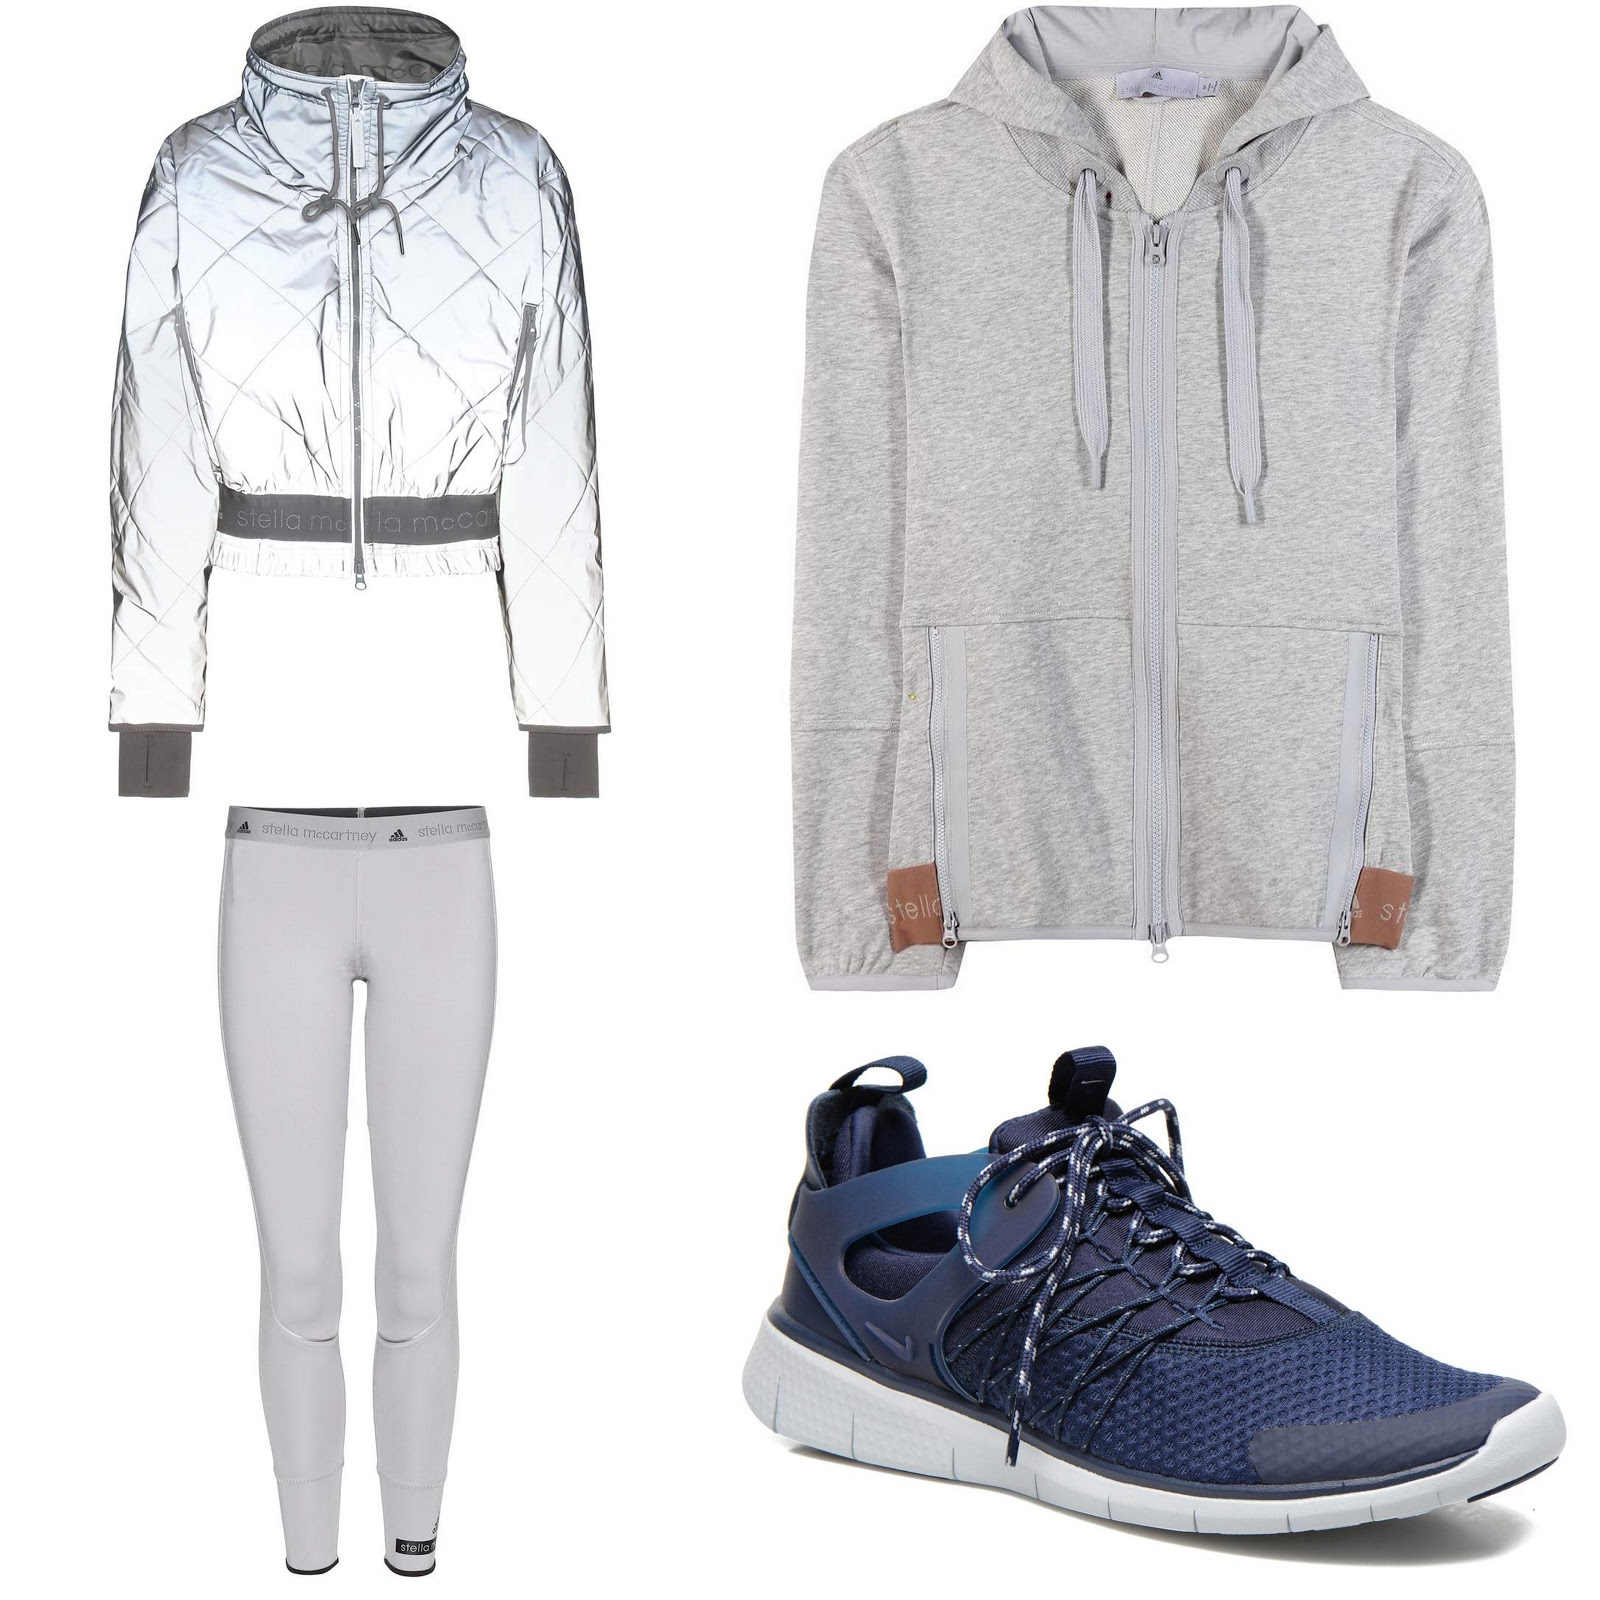 Stylish sporty bargains